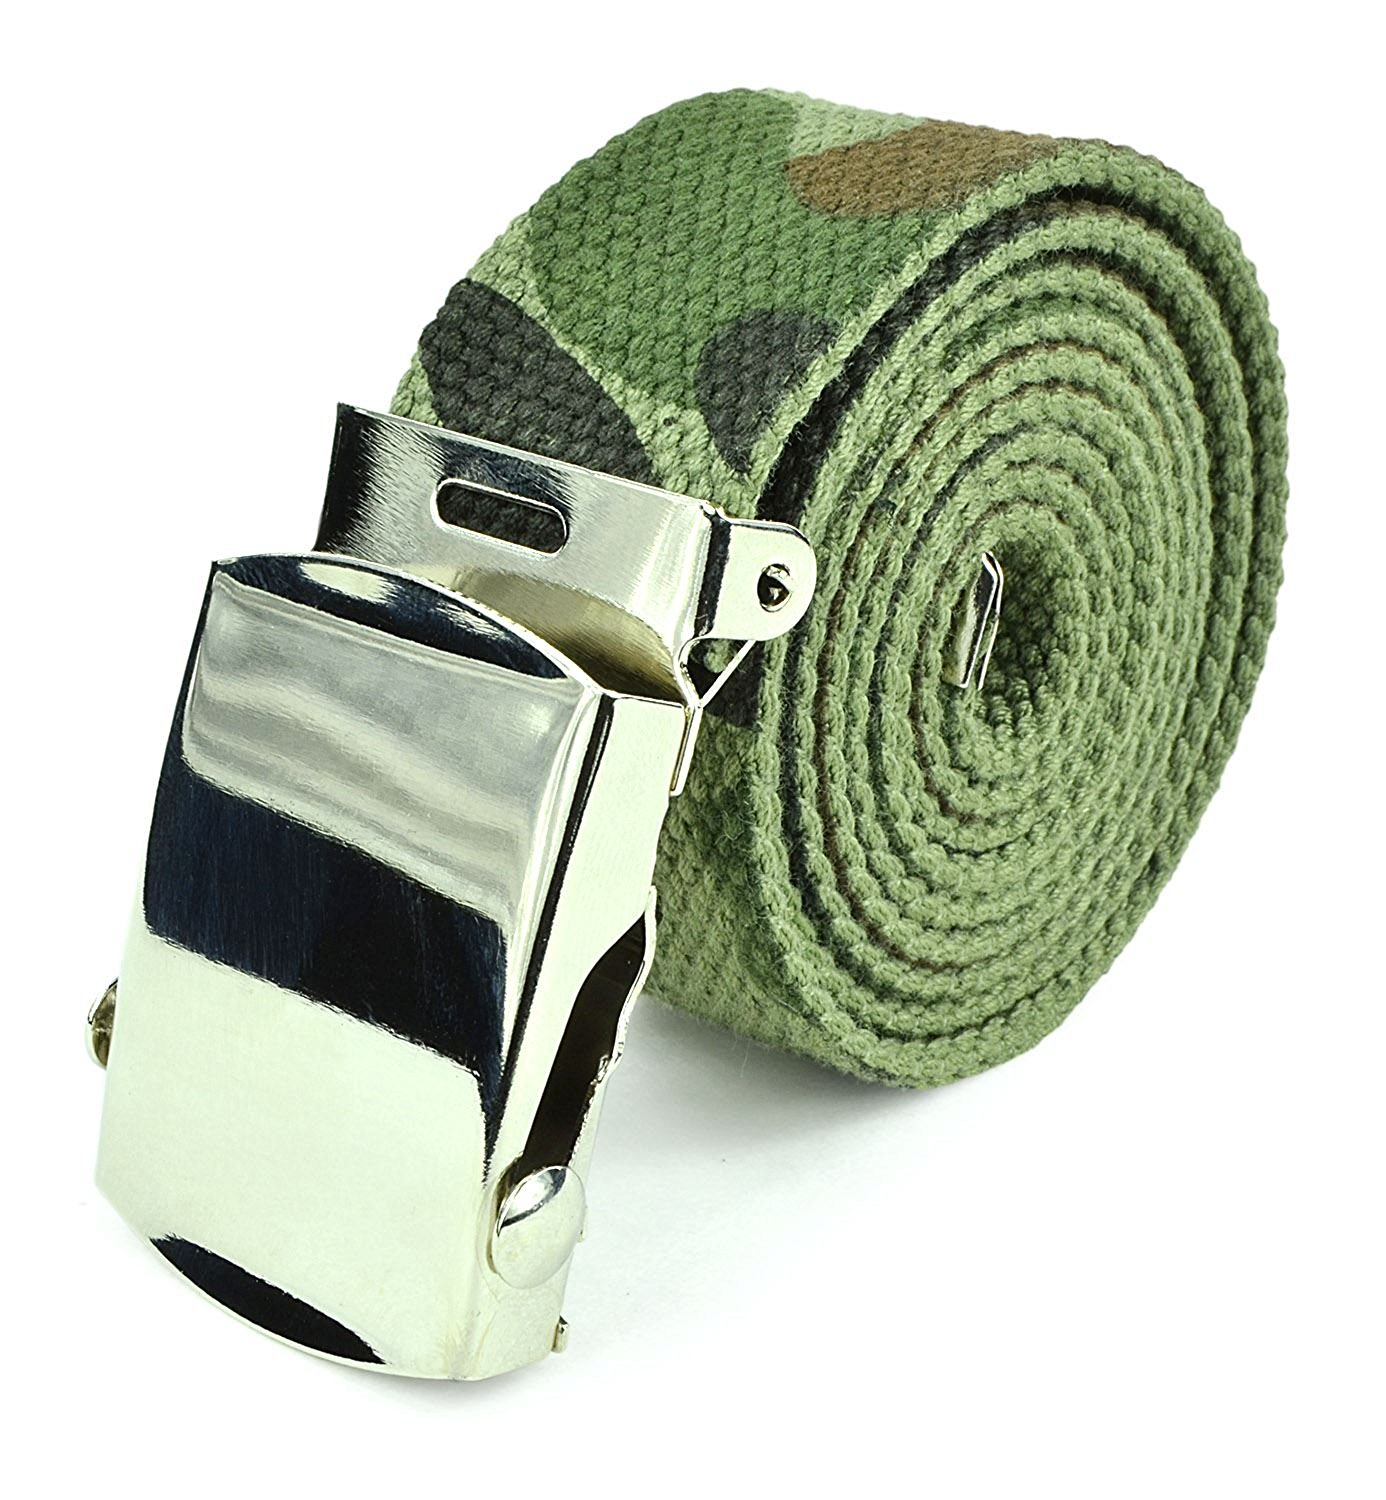 "Canvas Web Belt Military Tactical Style Slide Buckle 44"" / 46"" Long - Army Green"